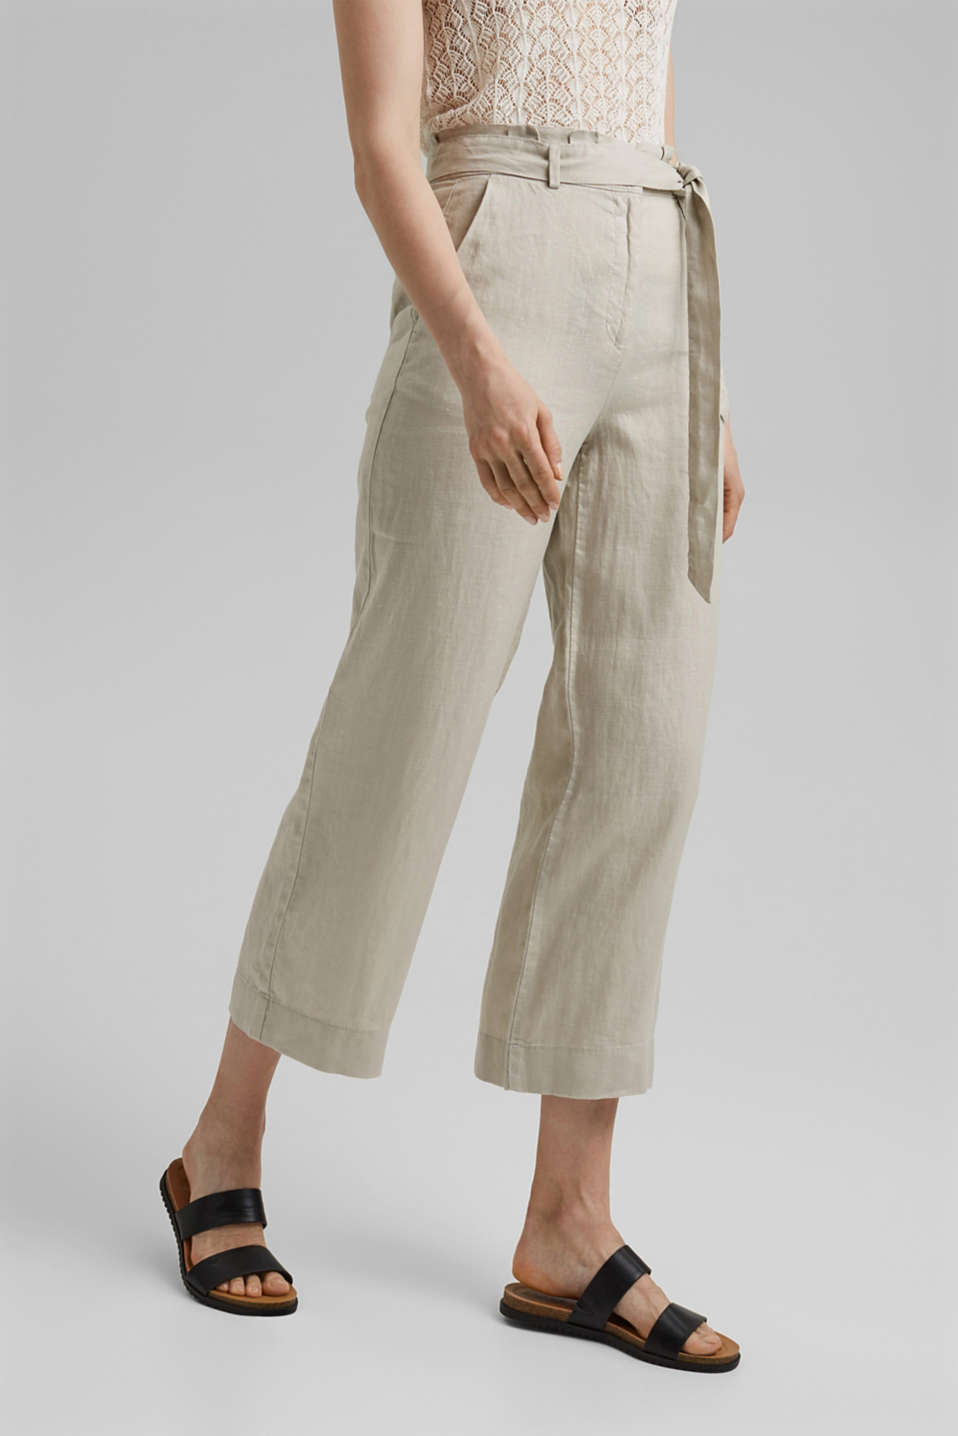 Esprit - Made of 100% linen: wide trousers with a belt